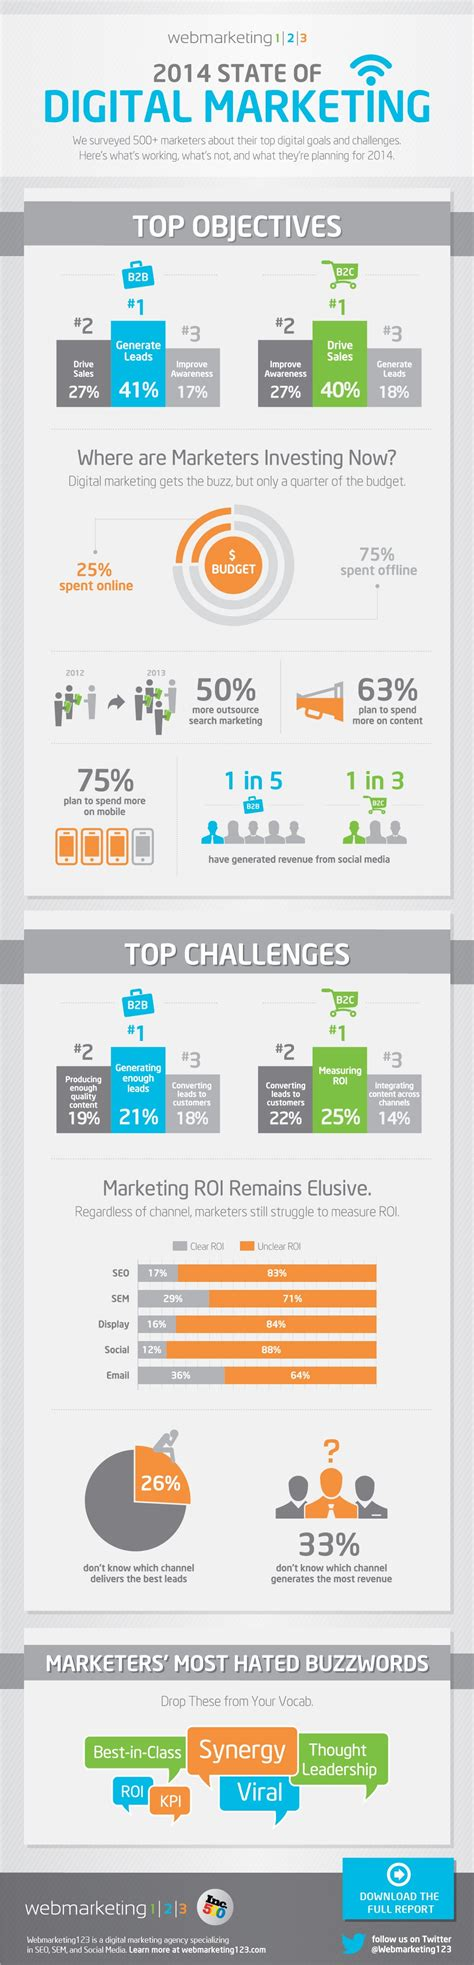 Digital Marketing by The State Of Digital Marketing In 2014 Infographic